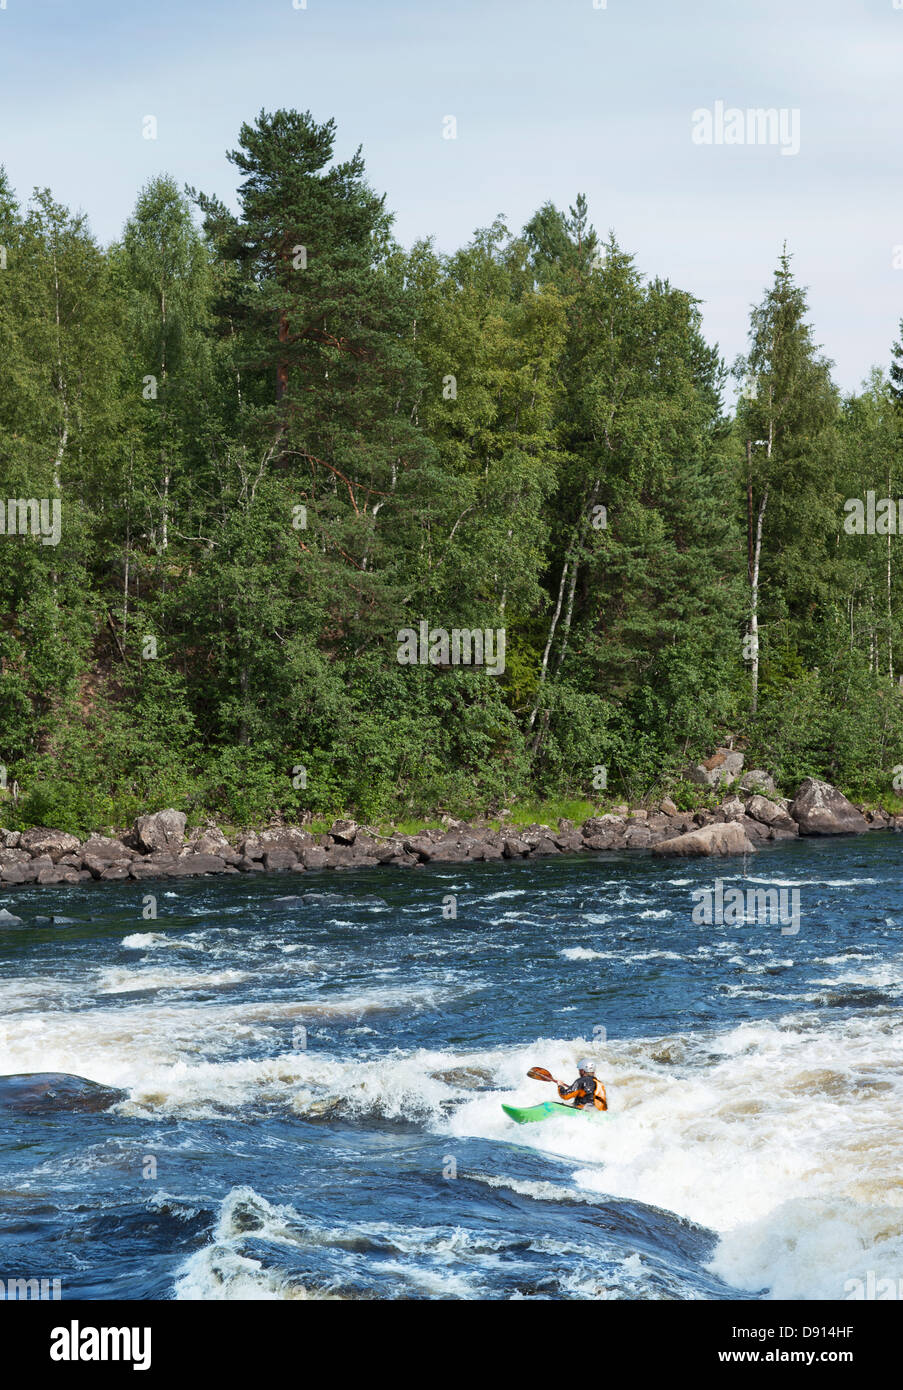 People rafting at river - Stock Image